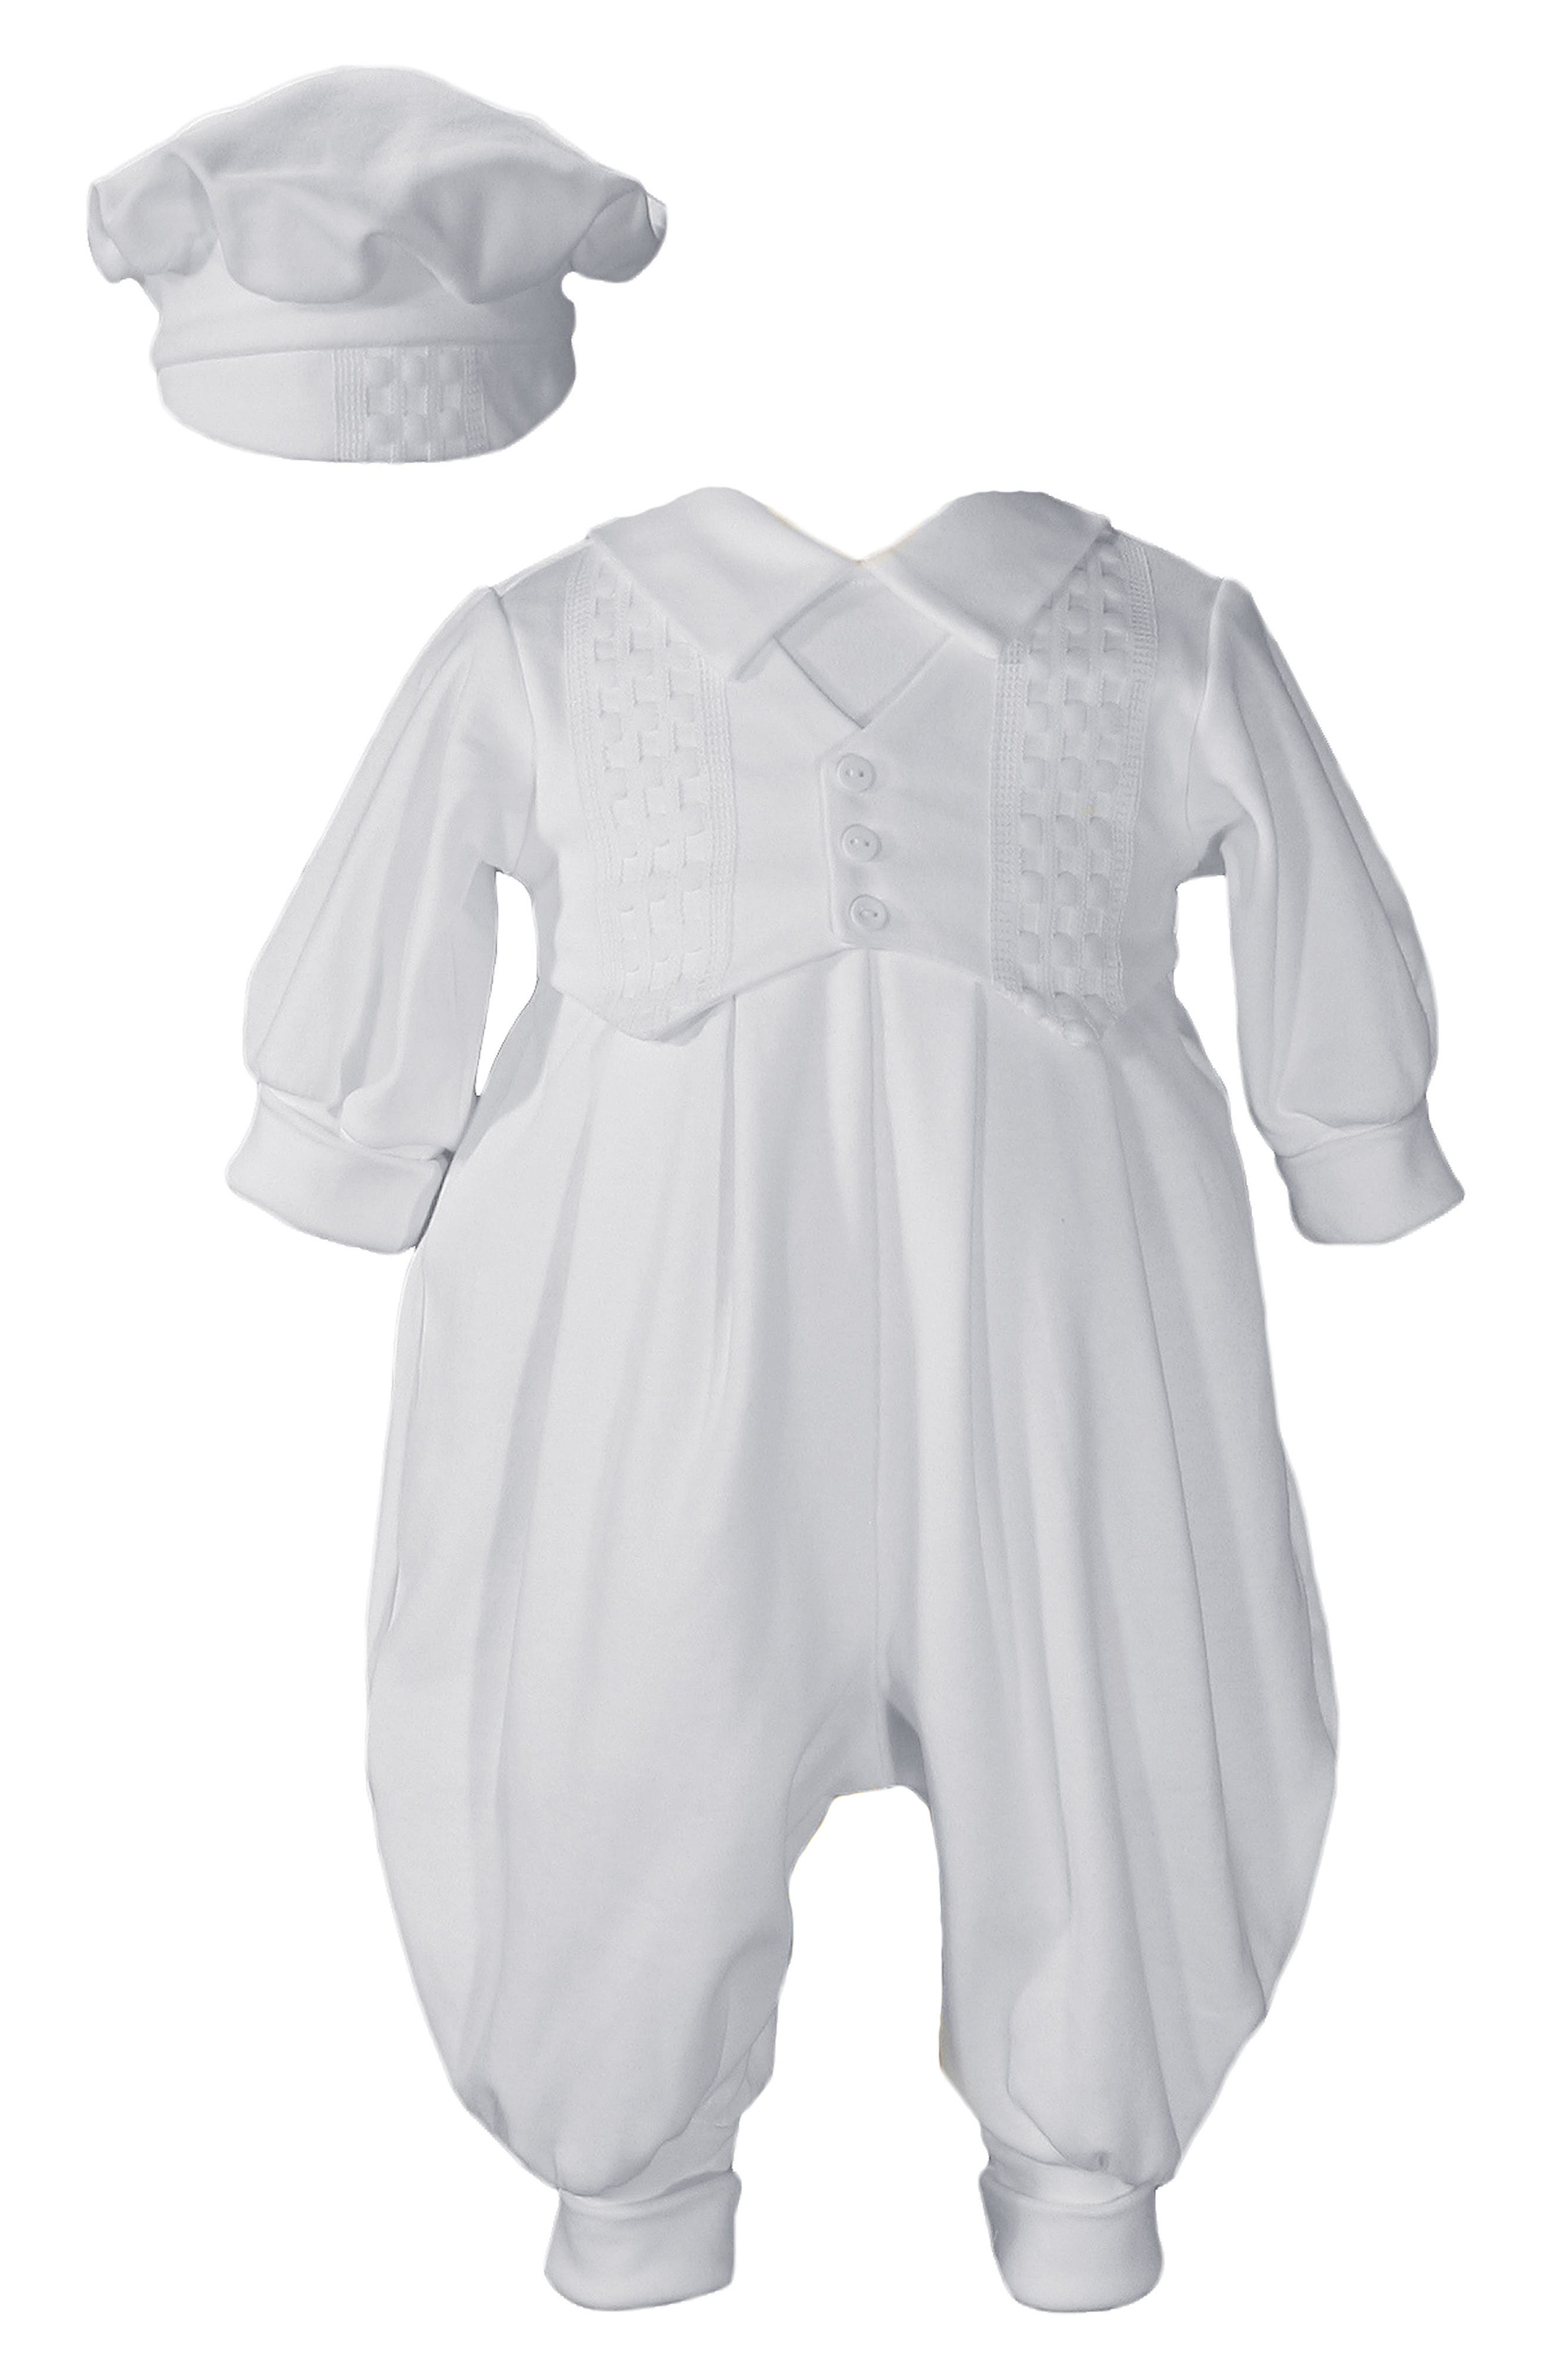 Alternate Image 1 Selected - Little Things Mean A Lot Romper & Hat Set (Baby Boys)